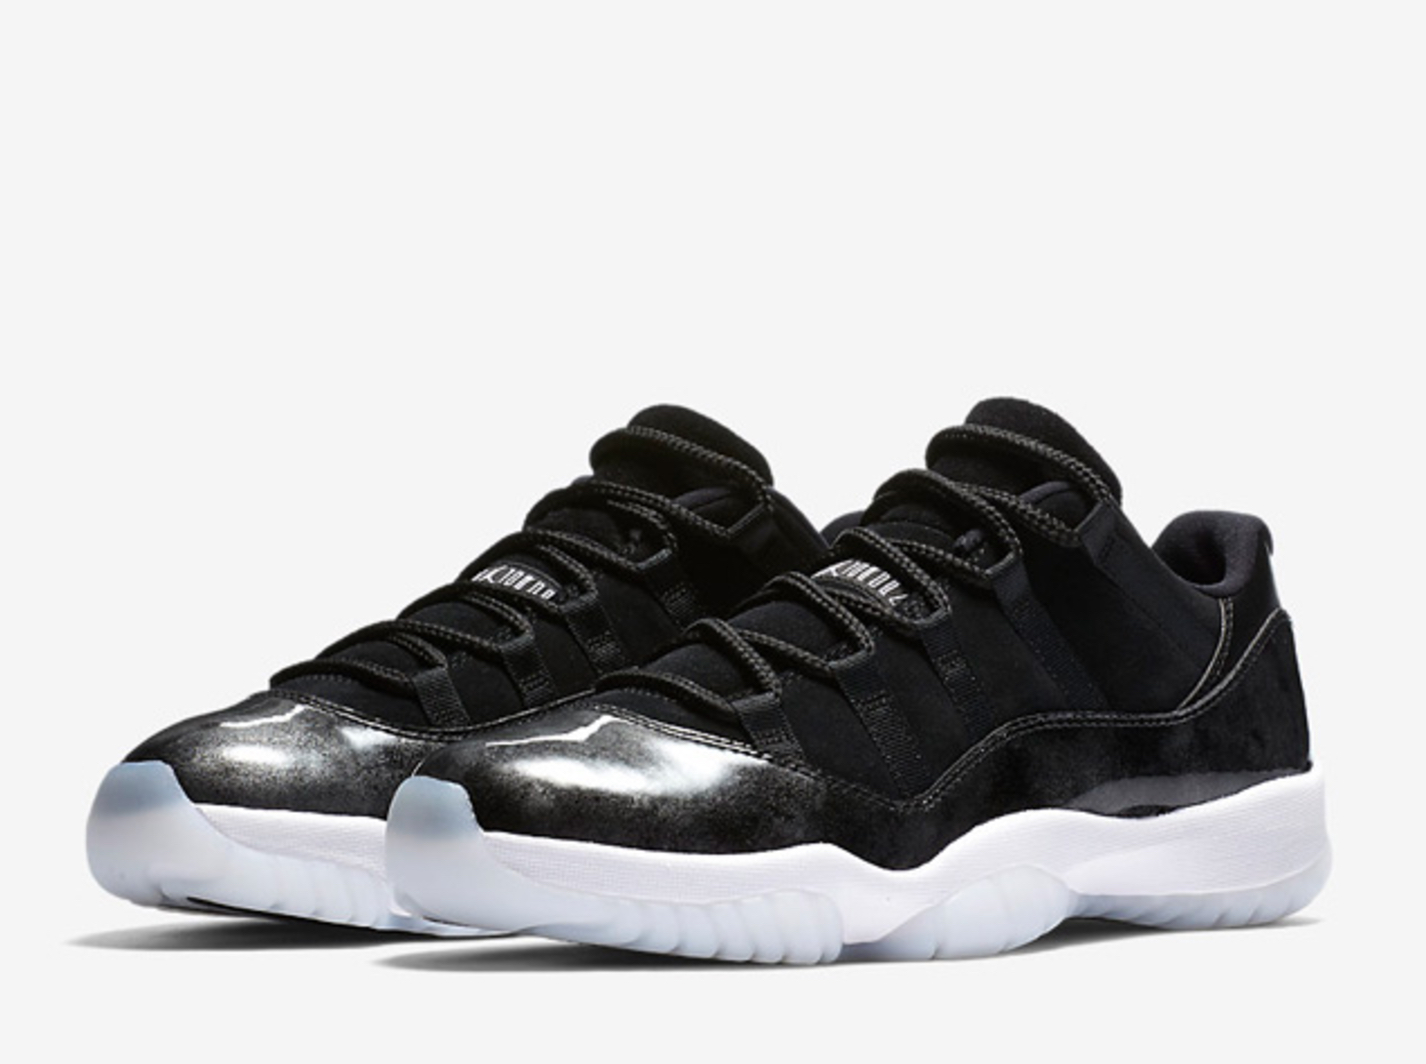 air jordan 11 low retro white black-metallic silver